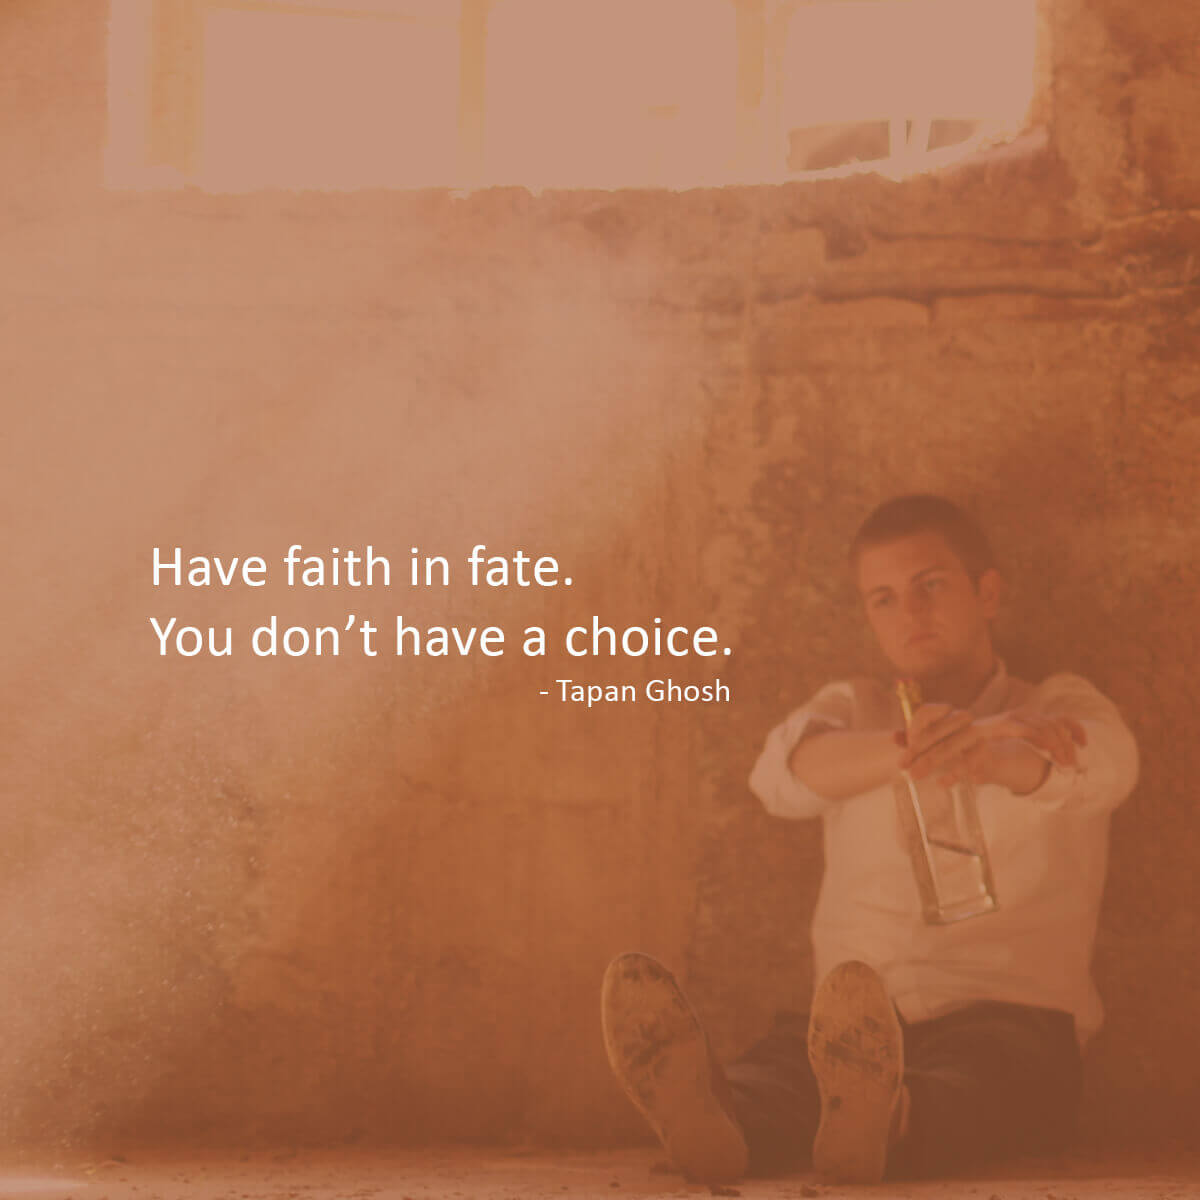 Have faith in fate. You don't have a choice